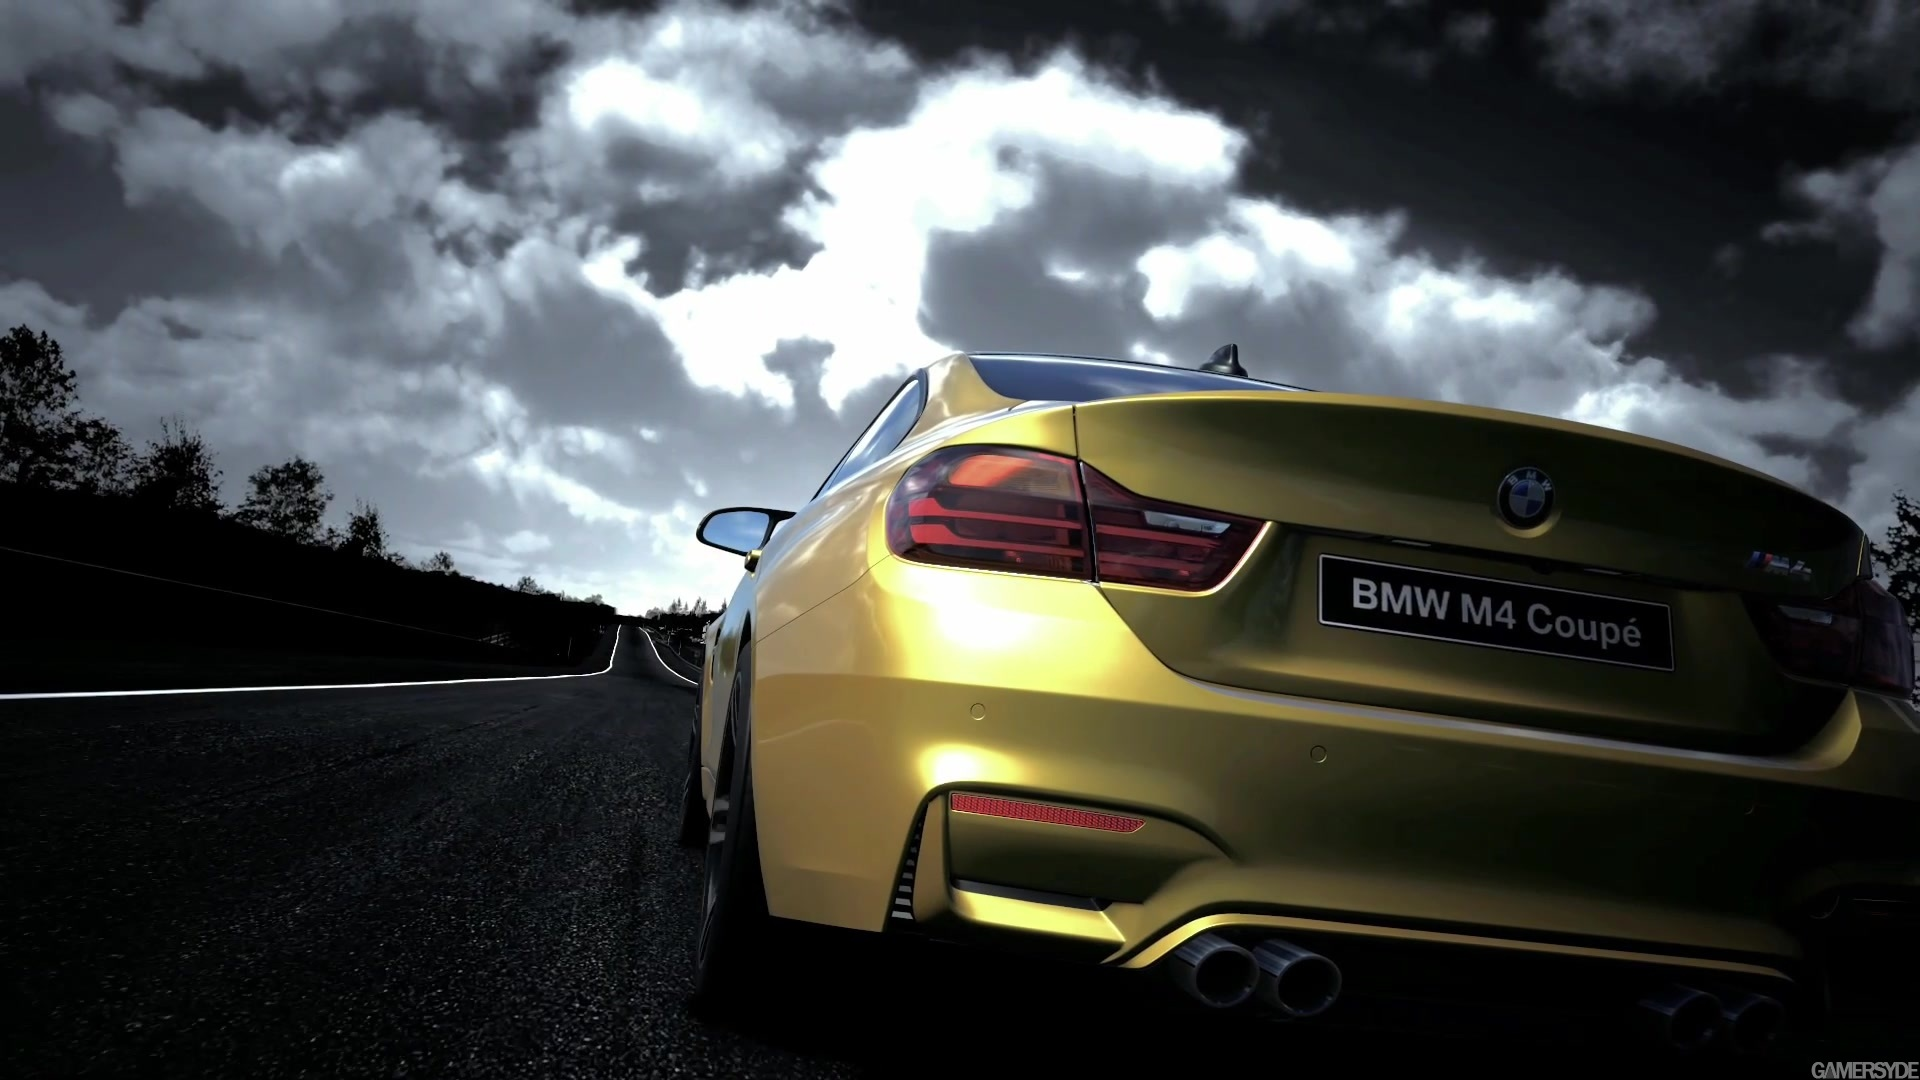 bmw hd wallpaper for laptop